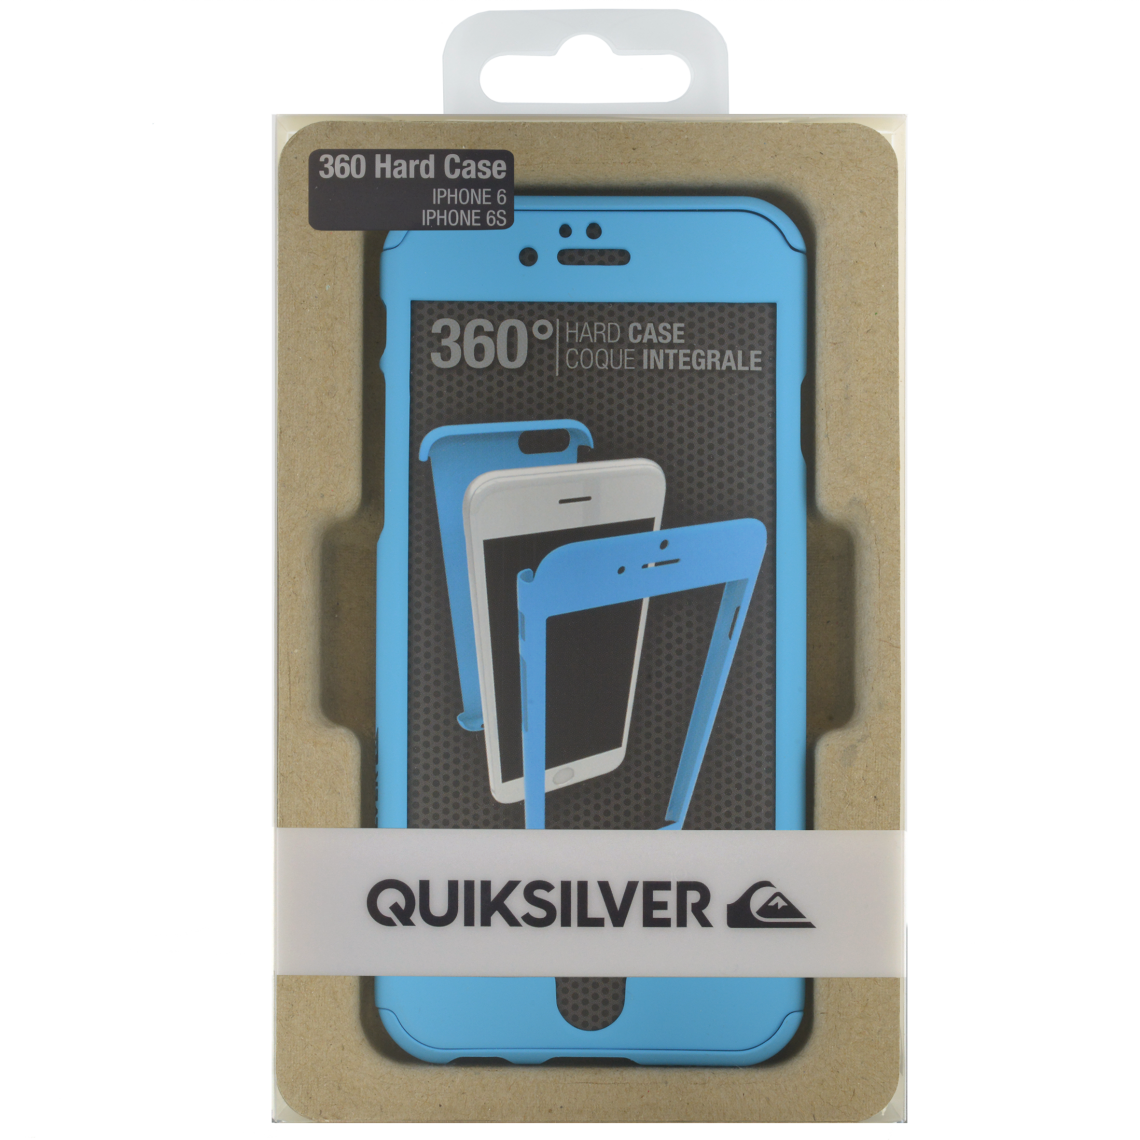 QUIKSILVER Hard Case Protection 360 (Blue) - Image   #3